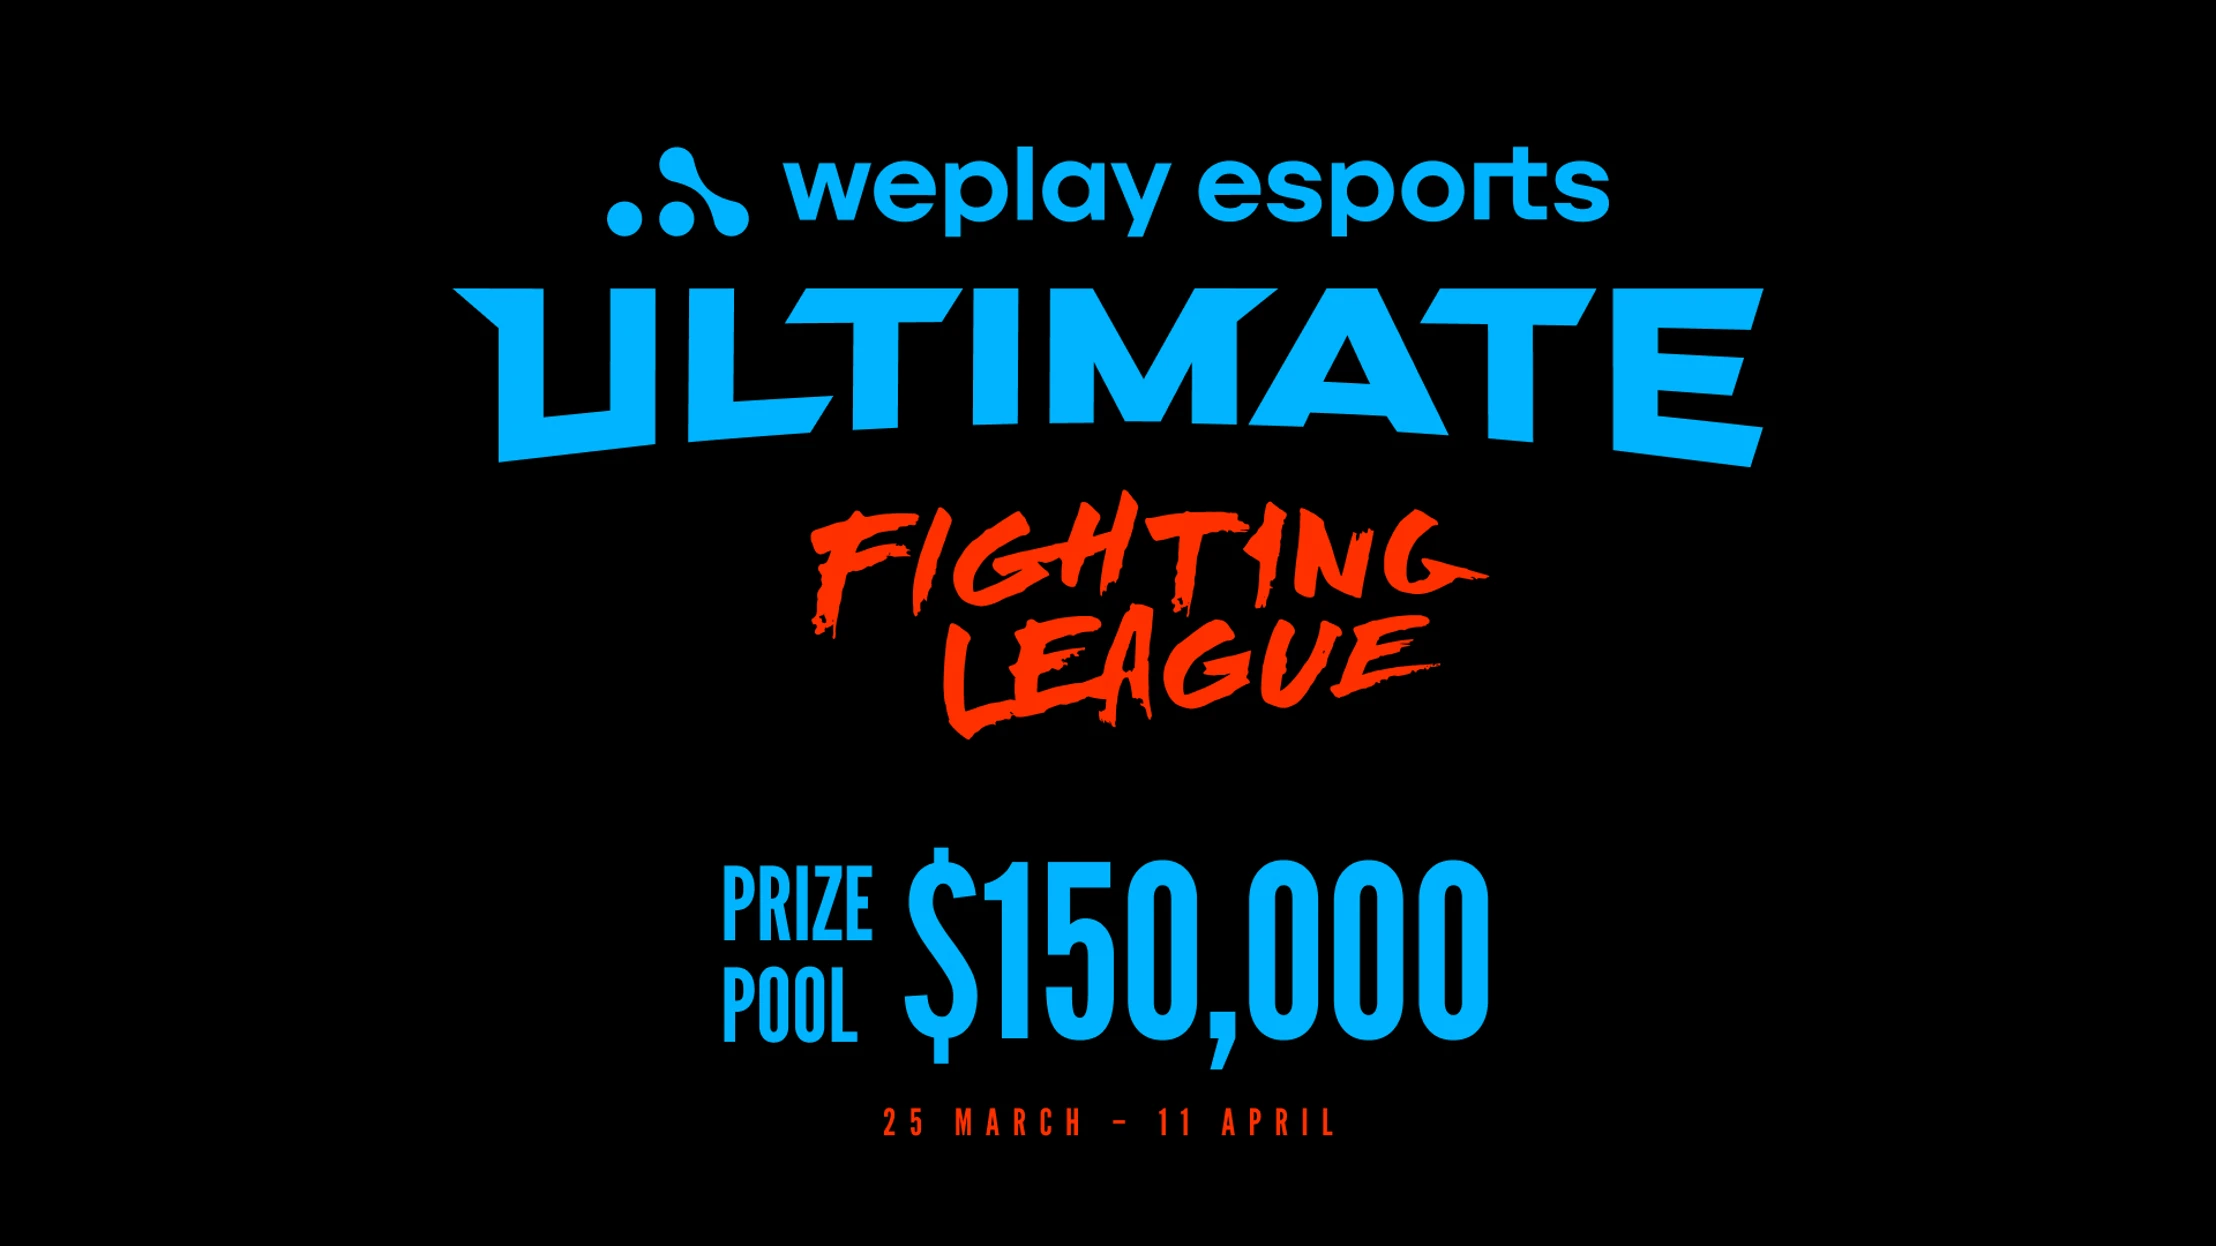 WePlay Esports Ultimate League Prize Pool $15,000